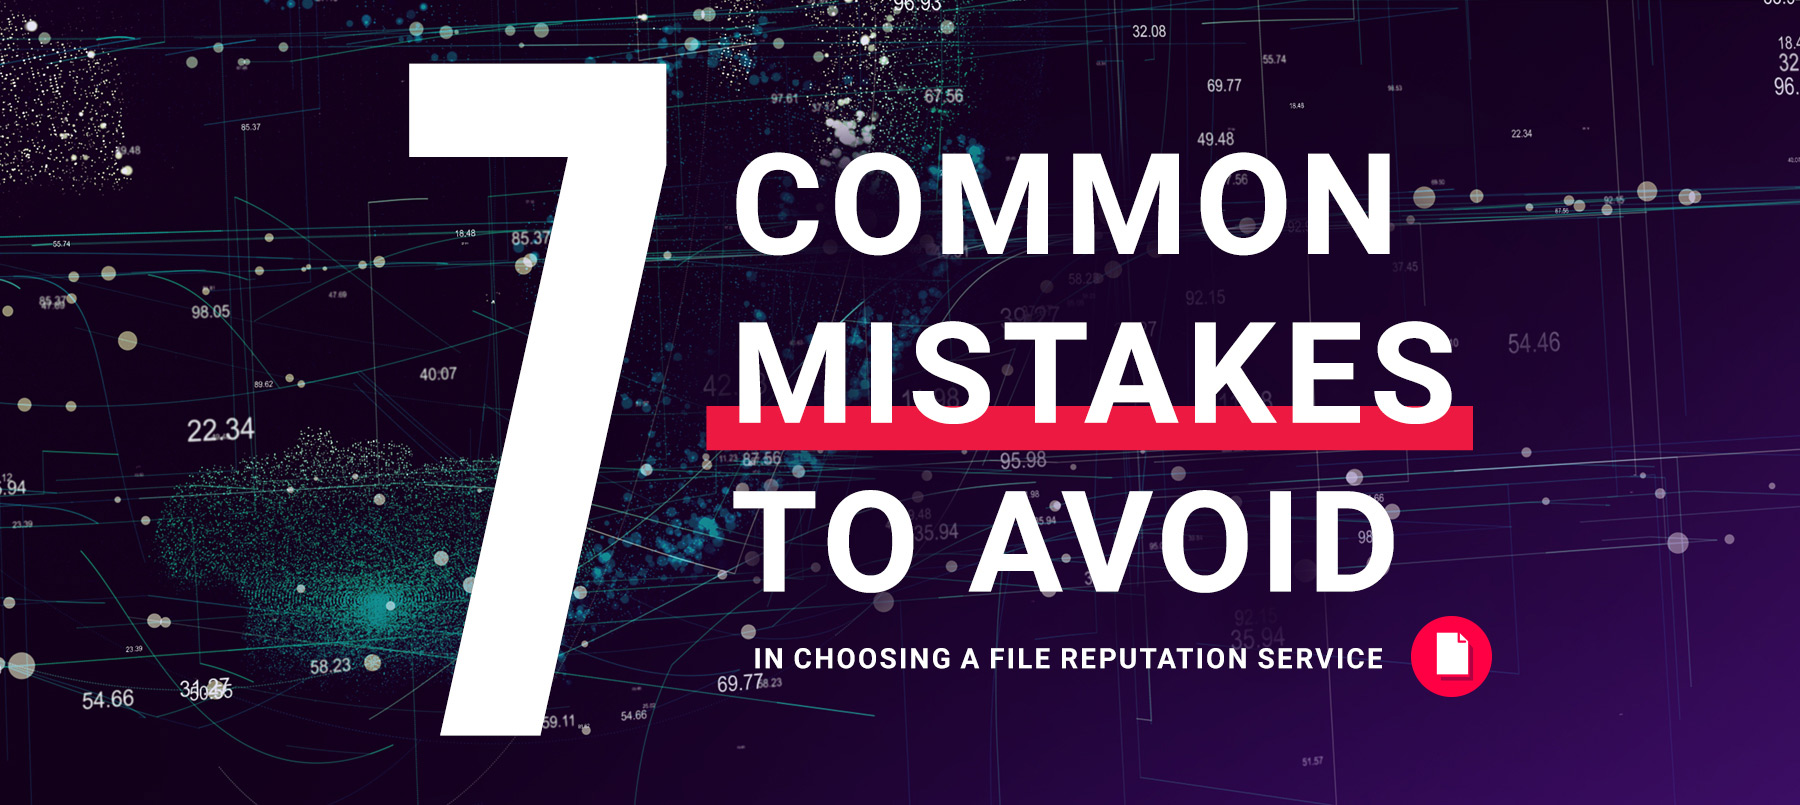 7 Common Mistakes to Avoid in Choosing a File Reputation Service